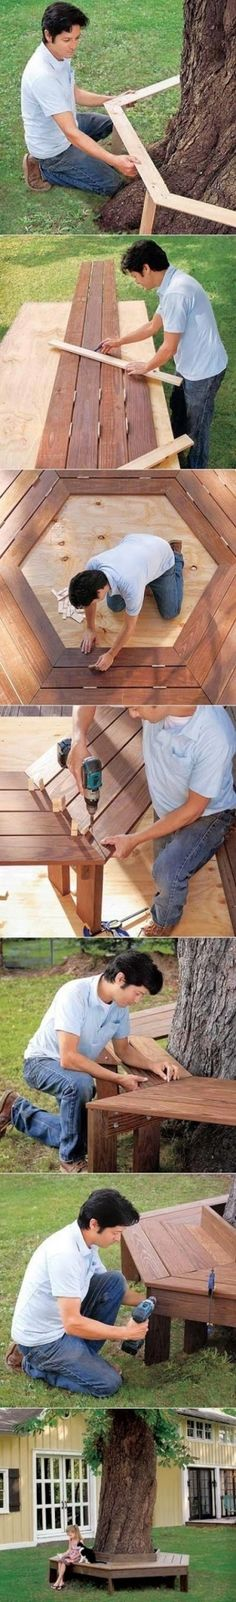 Learn how to build a bench around a tree by CrashFistFight